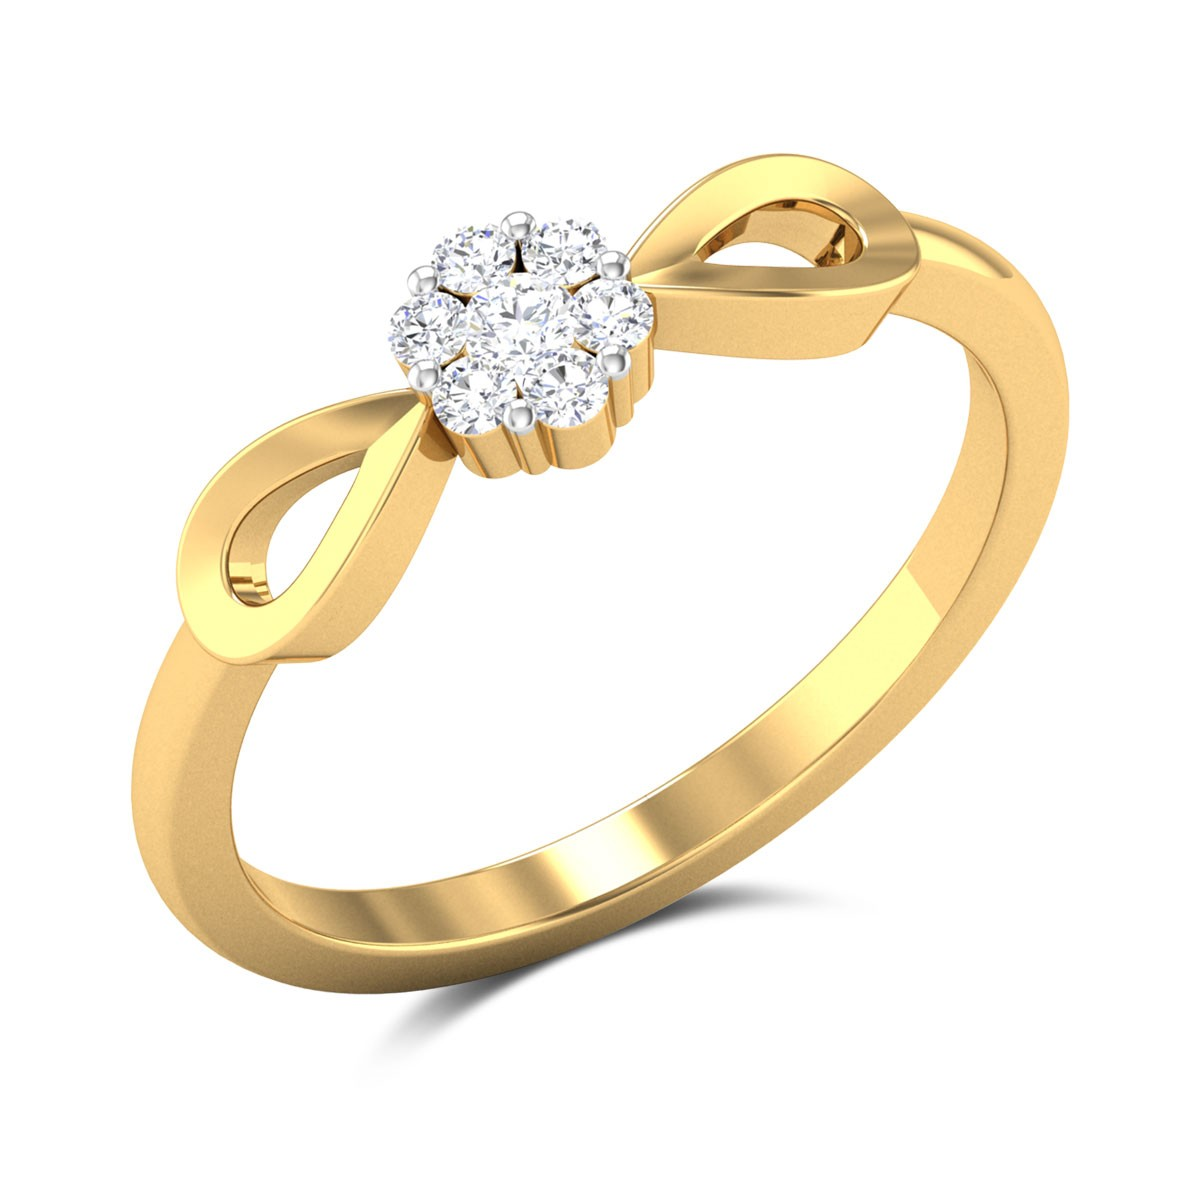 Gabrialla Diamond Ring